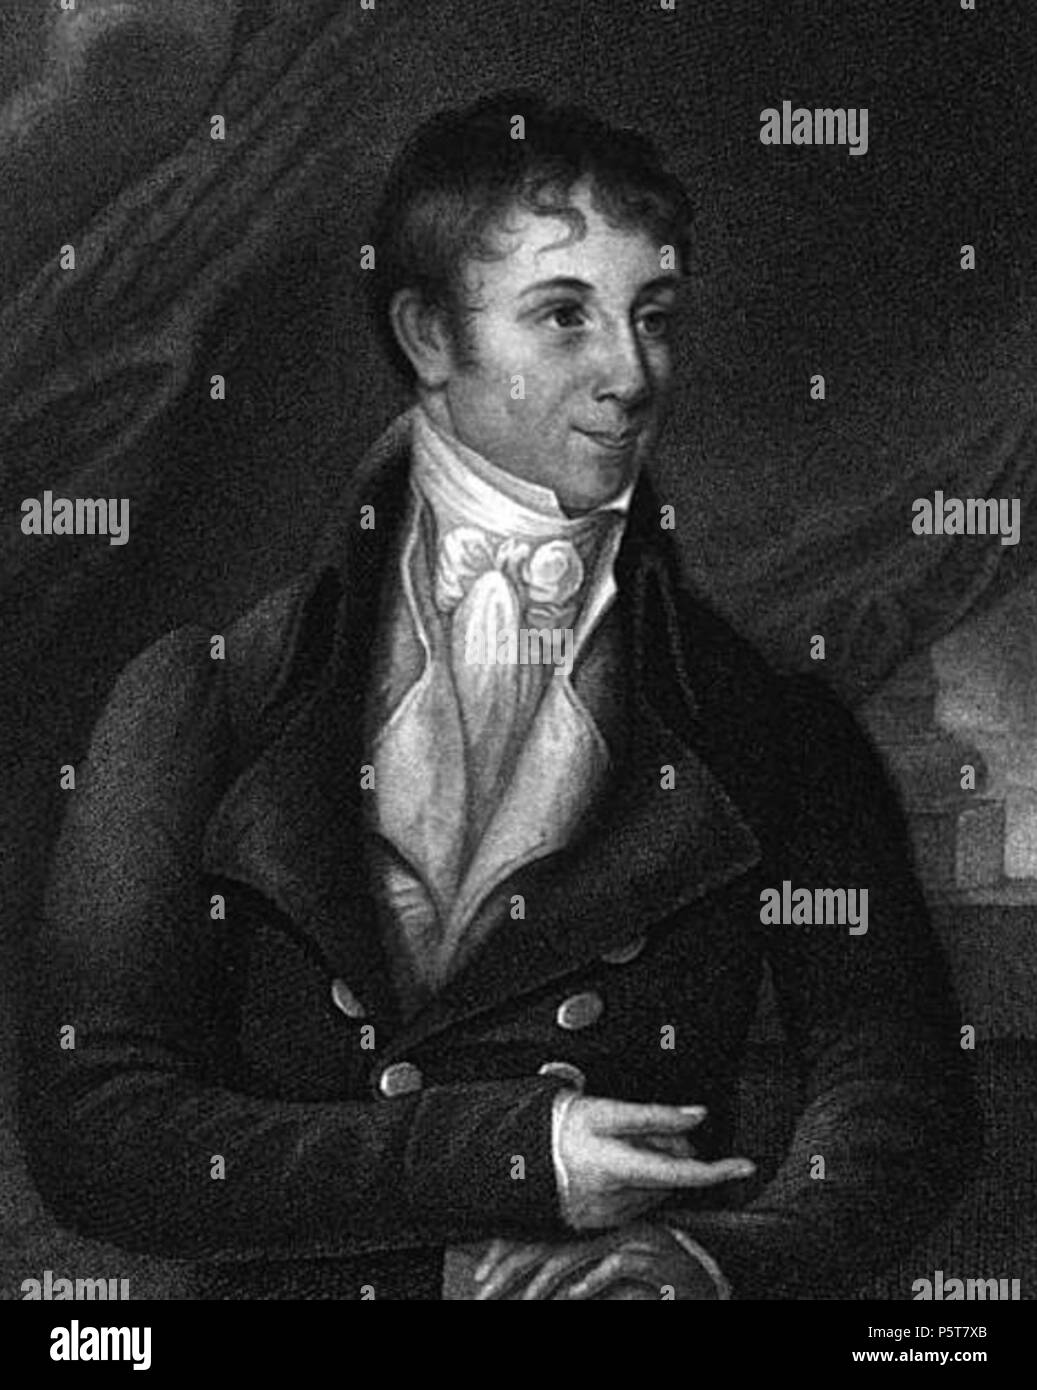 N/A. English: Engraving of American writer Charles Brockden Brown. From The Life of Charles Brockden Brown by William Dunlap. Published by James P. Parke, 1815. Published 1815. 'Engraved by L. B. Forrest from a Miniature by William Dunlap in 1806'   William Dunlap (1766–1839)   Description American theatrical producer, writer, actor and painter  Date of birth/death 1 February 1766 28 September 1839  Location of birth/death Perth Amboy, NJ New York City  Authority control  : Q2578528 VIAF:12464592 ISNI:0000 0000 8091 9244 ULAN:500027594 LCCN:n50029736 Open Library:OL2889051A WorldCat 325 Ch - Stock Image